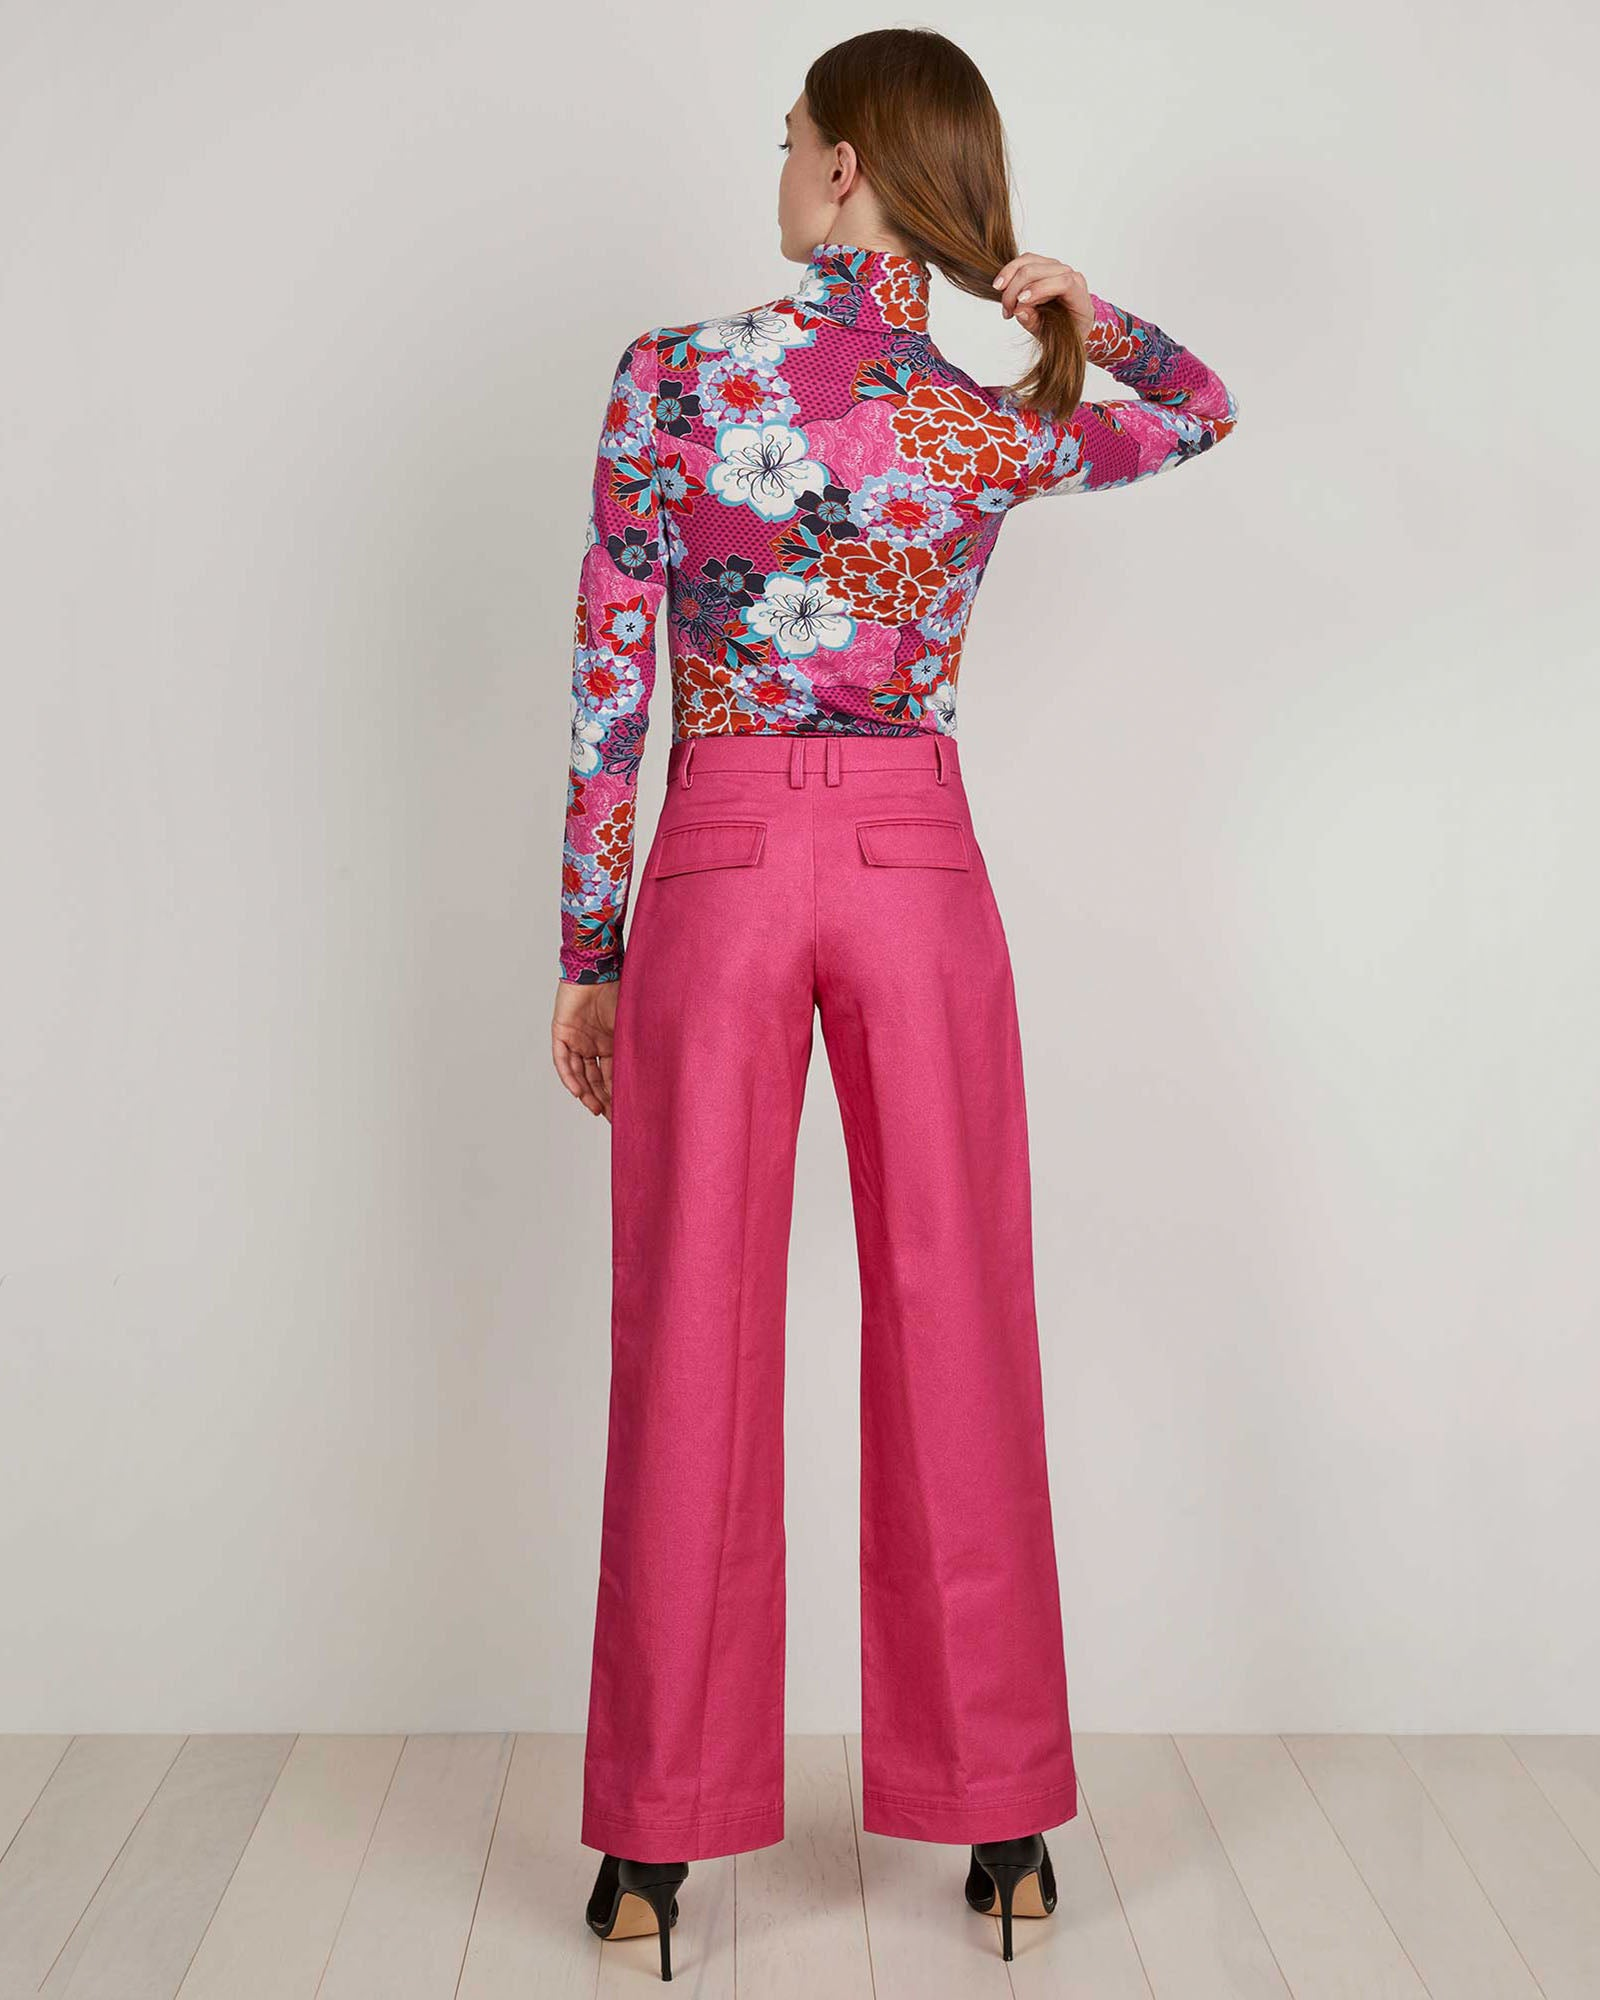 THE KIT's hot pink Turtleneck has a slim, stretchy fit great for layering and a bold pink pop floral print. Cut from a super soft bamboo cotton it's a super soft alternative.